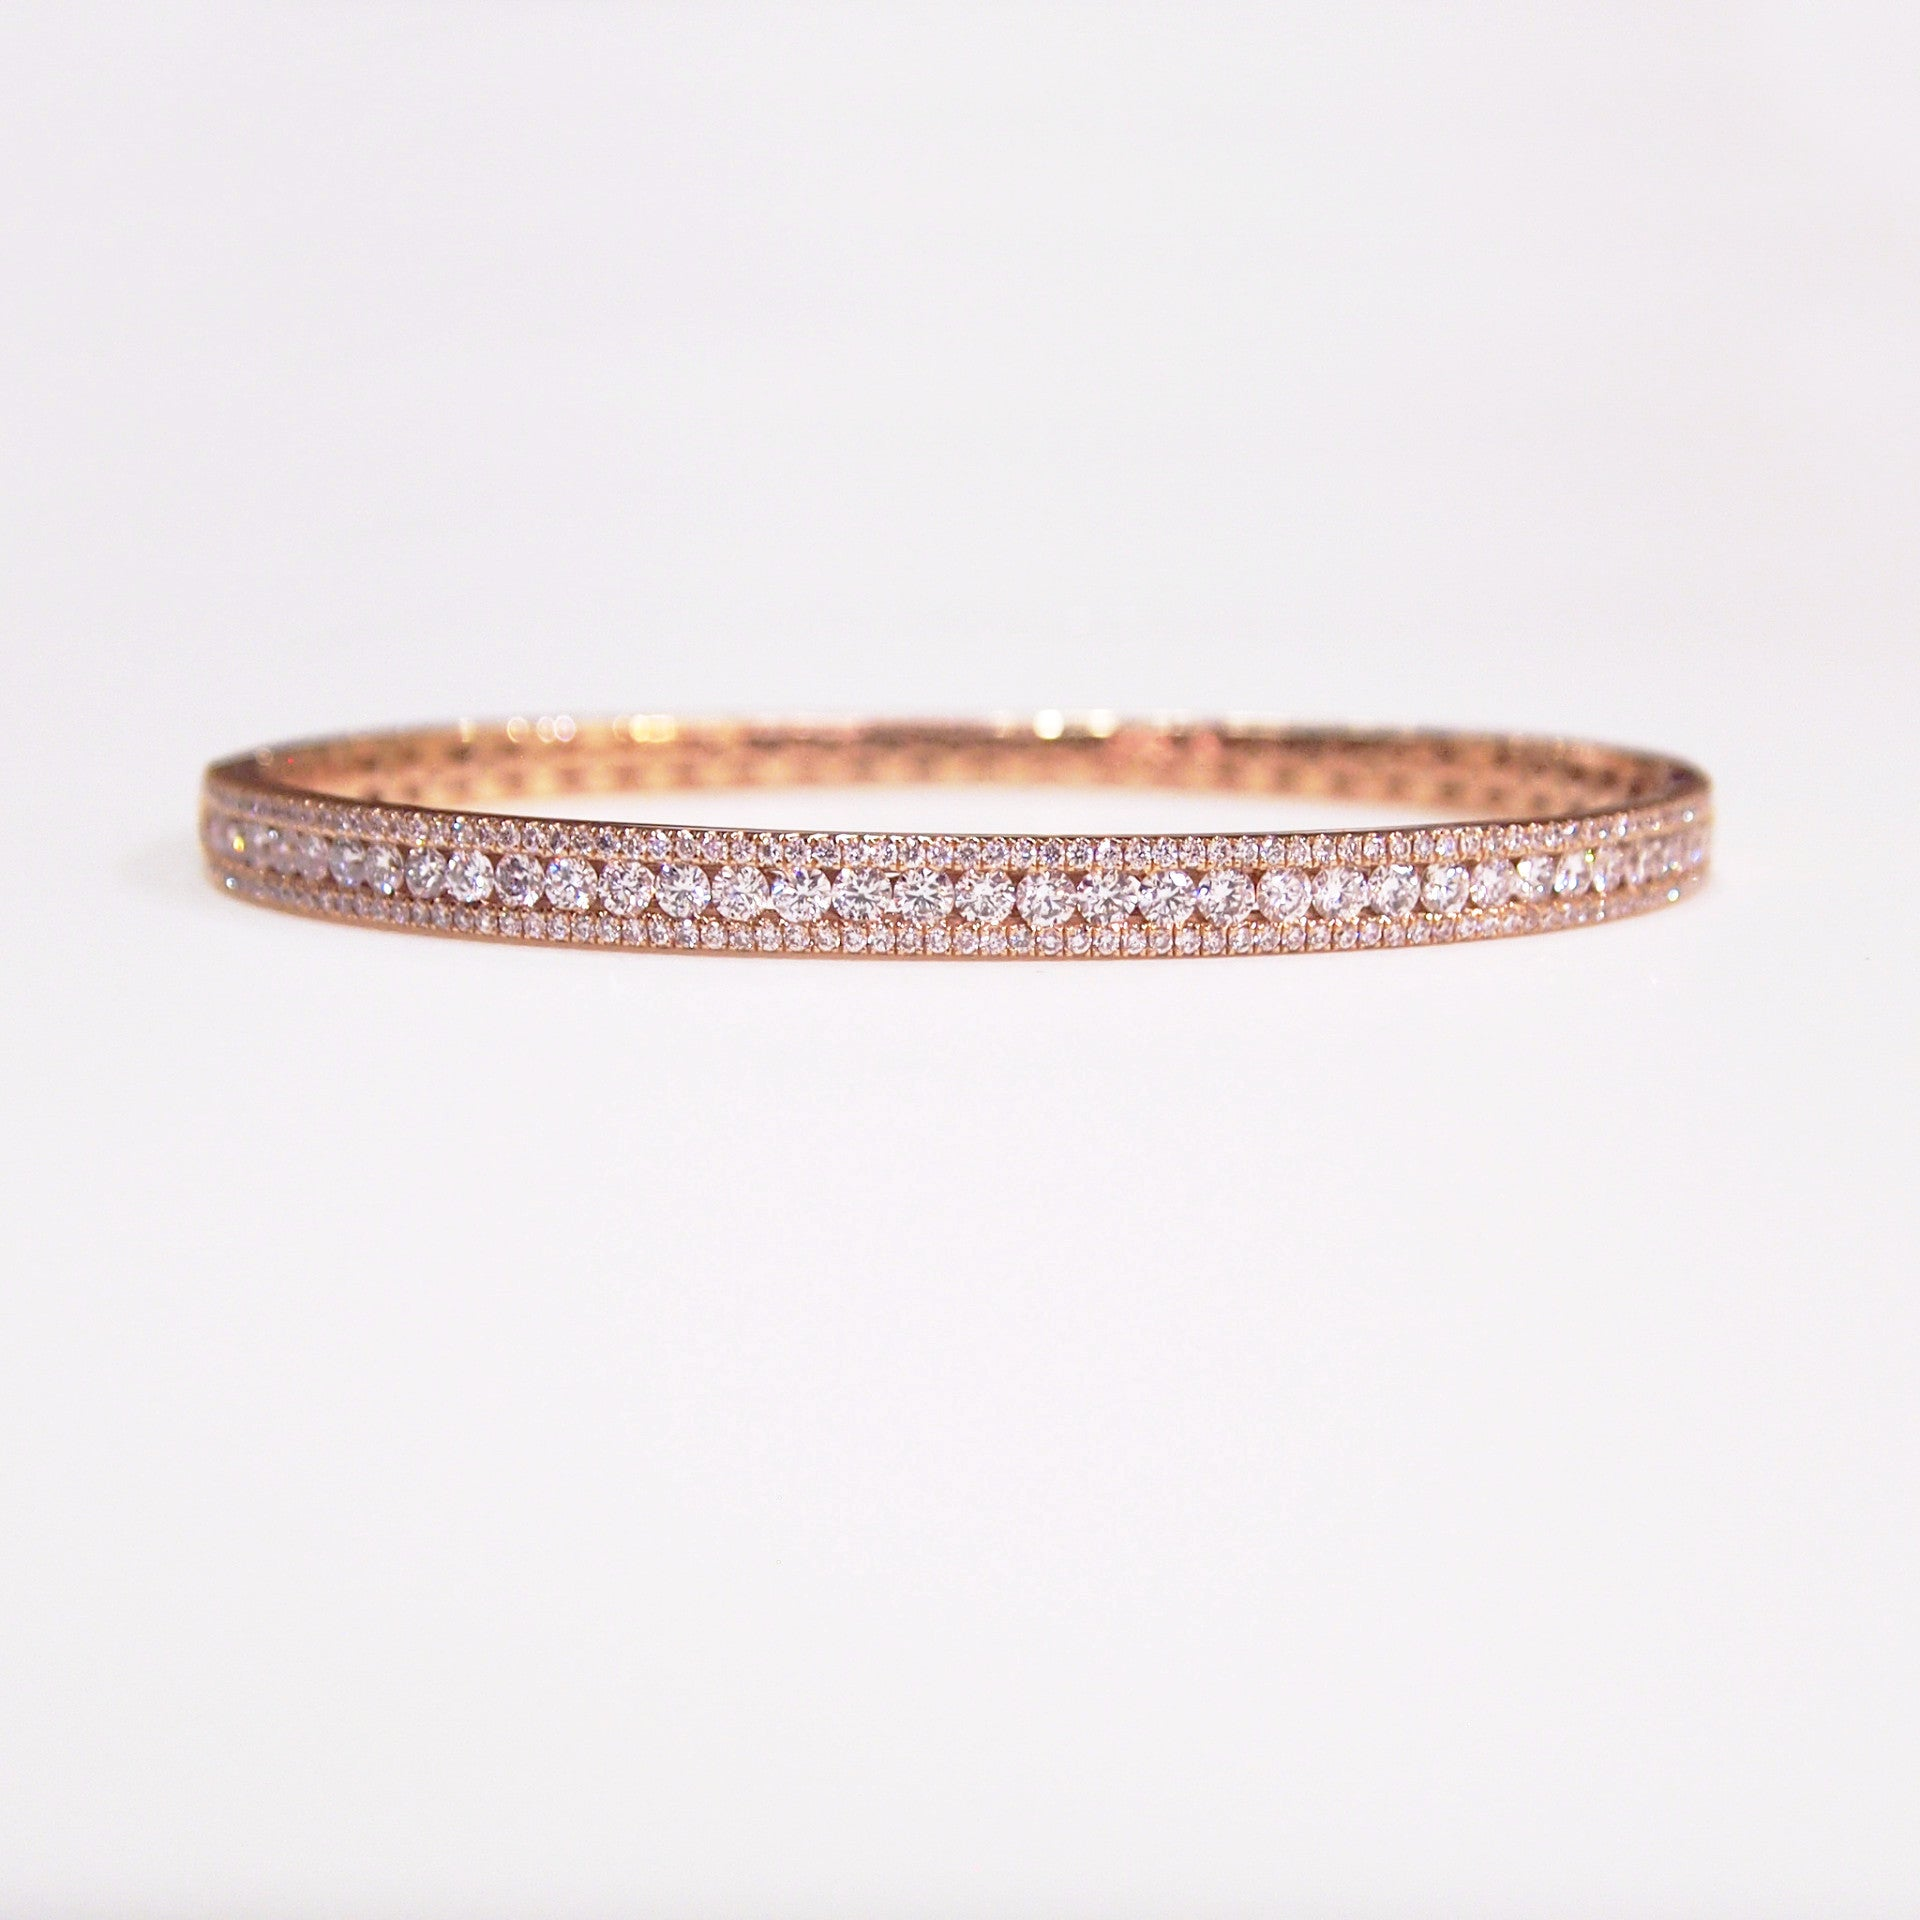 14K rose gold bangle bracelet with 195 round brilliant cut diamonds